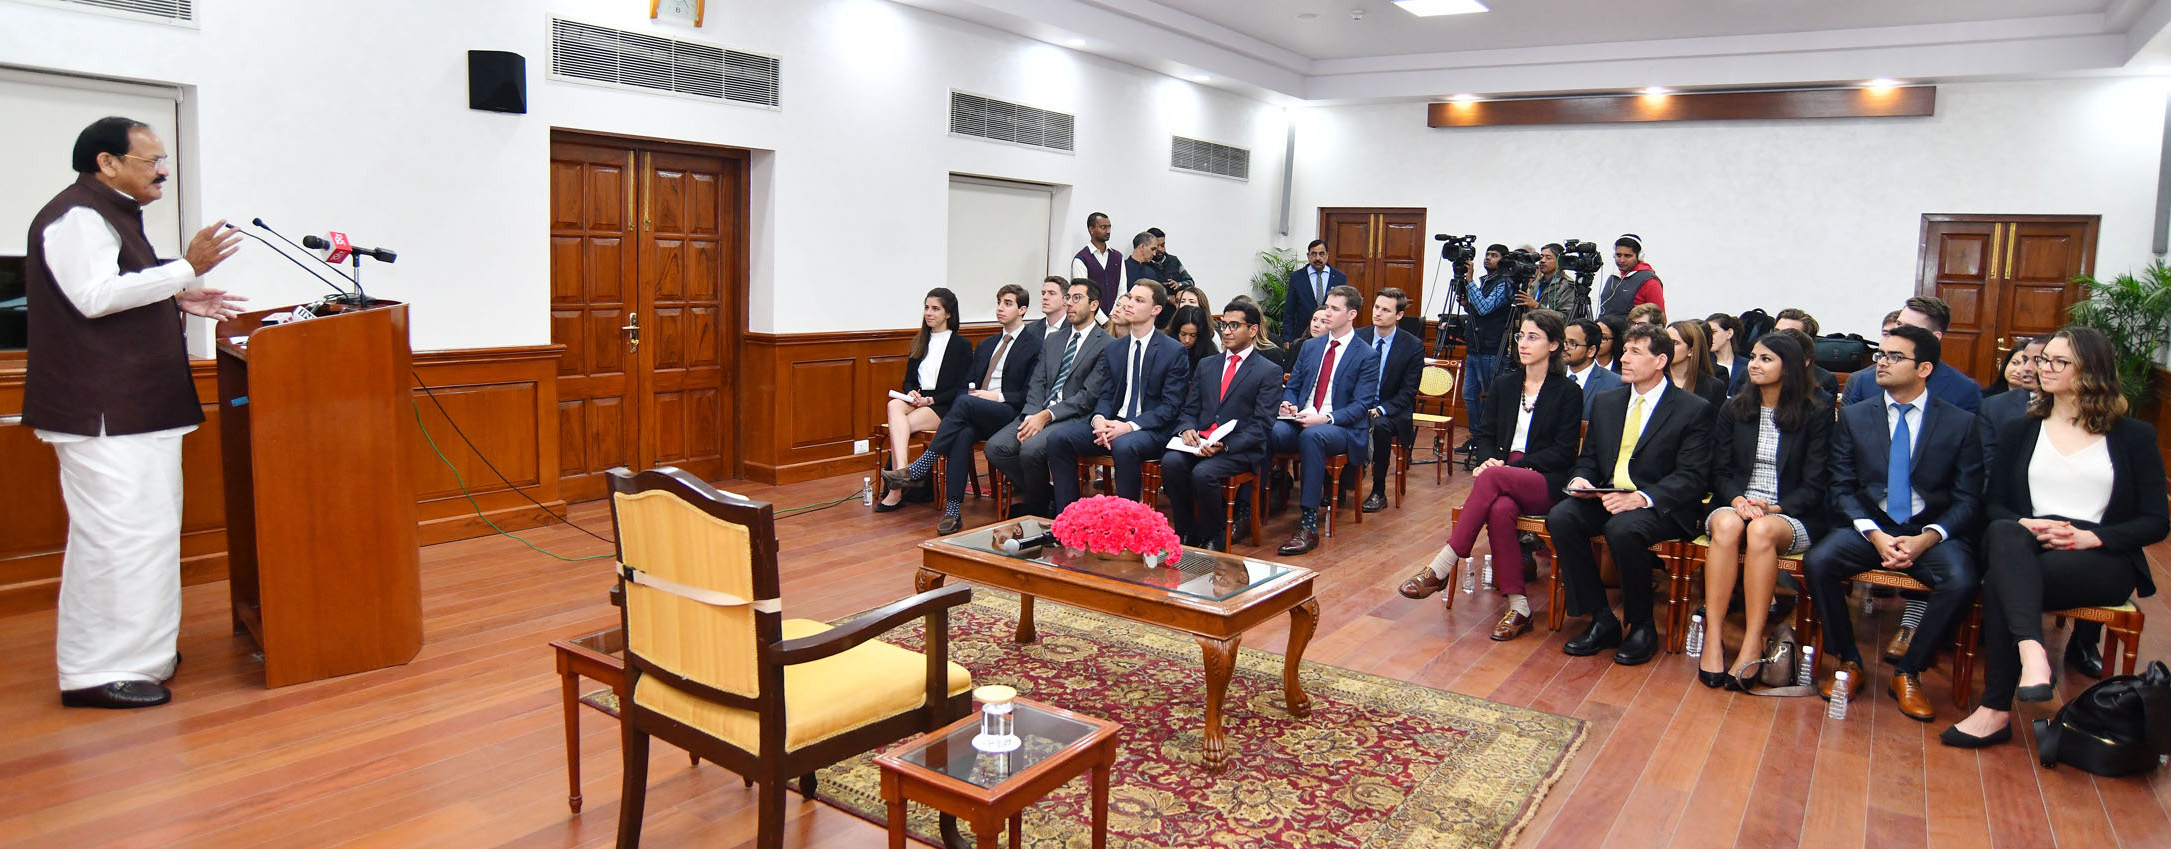 Vice President, M. Venkaiah Naidu addressing the Students from Stanford Graduate School of Business, in New Delhi on Tuesday.